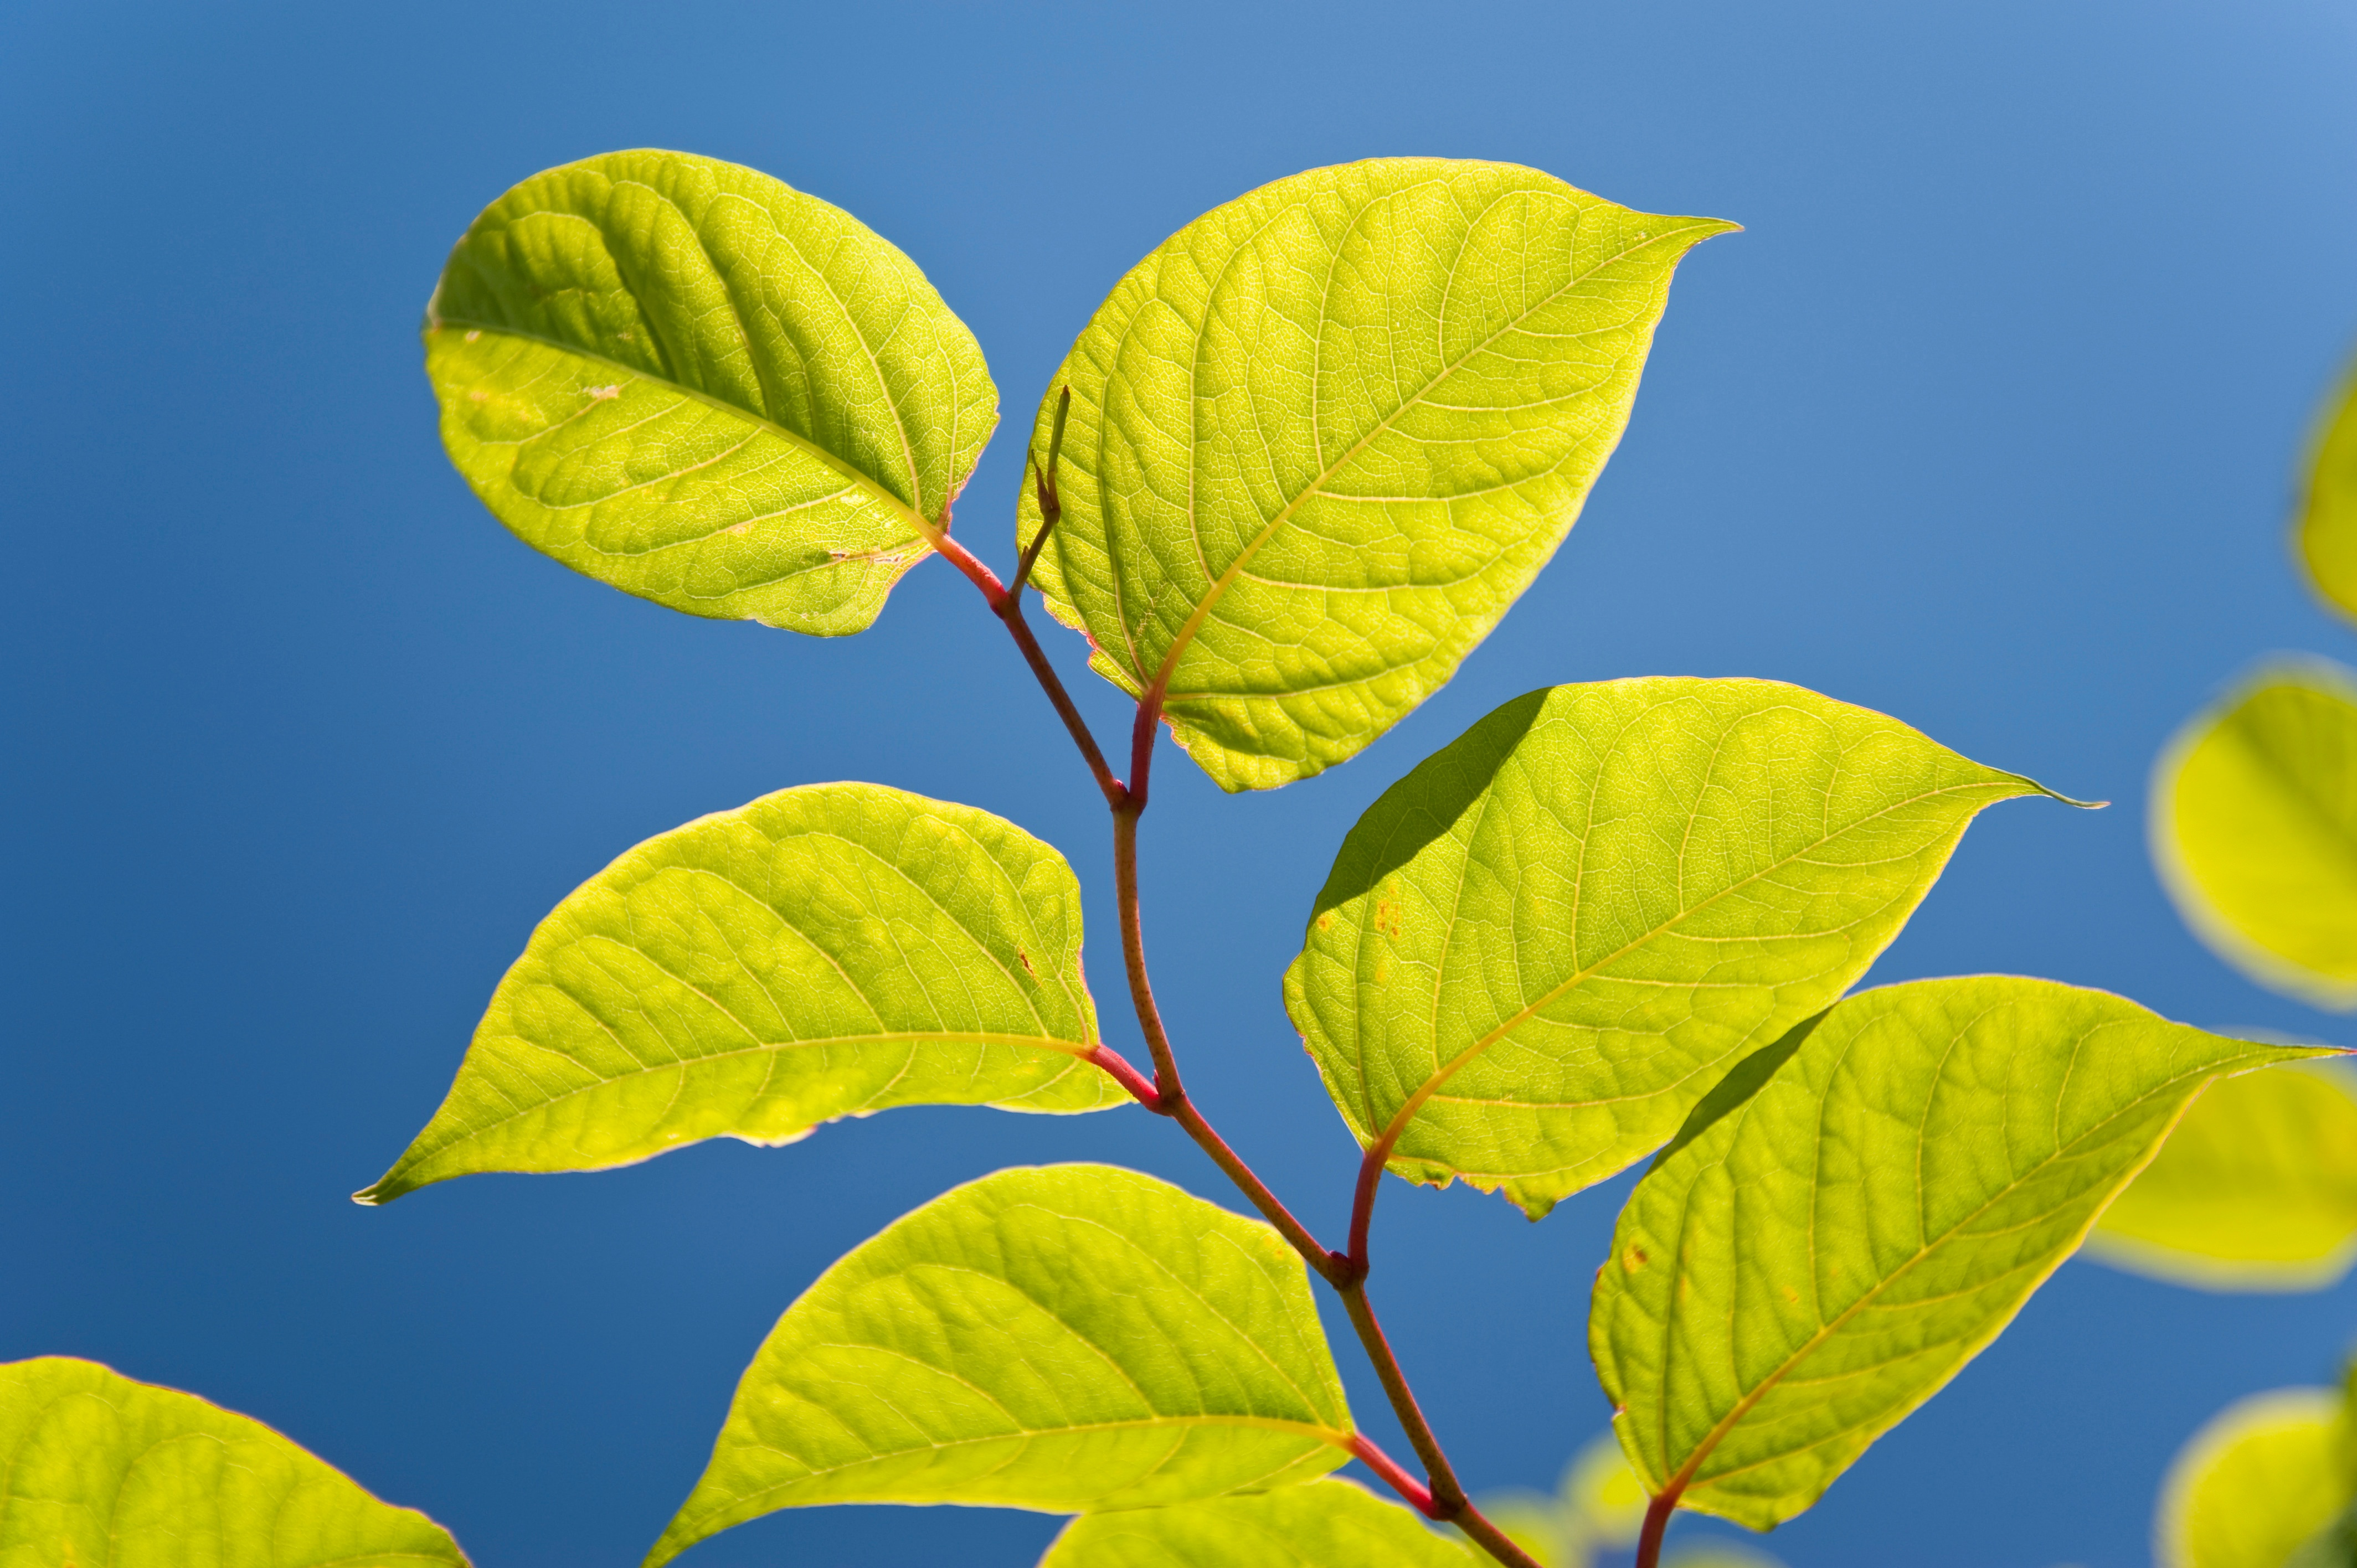 Leaves-in-an-Article-About-Environmental-Grants-From-Keep-America-Beautiful